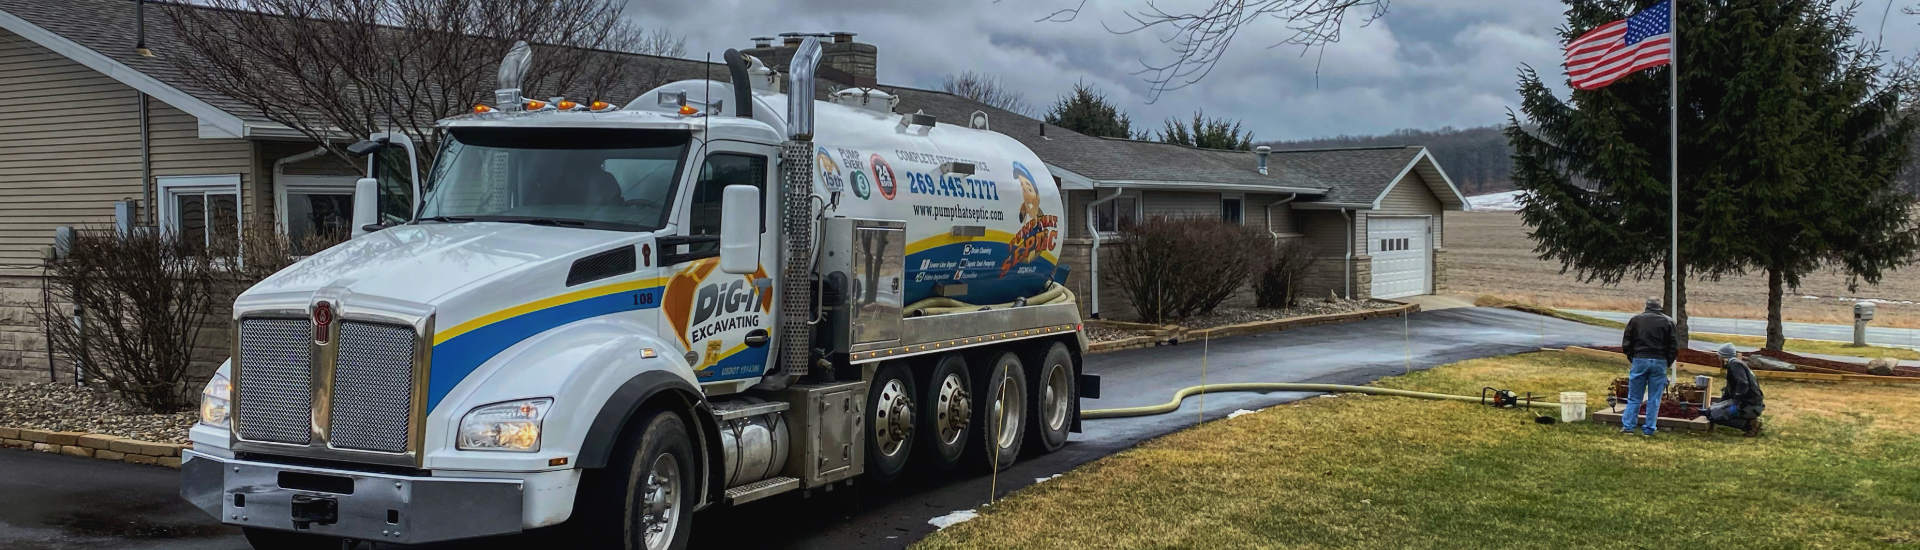 Septic inspection truck